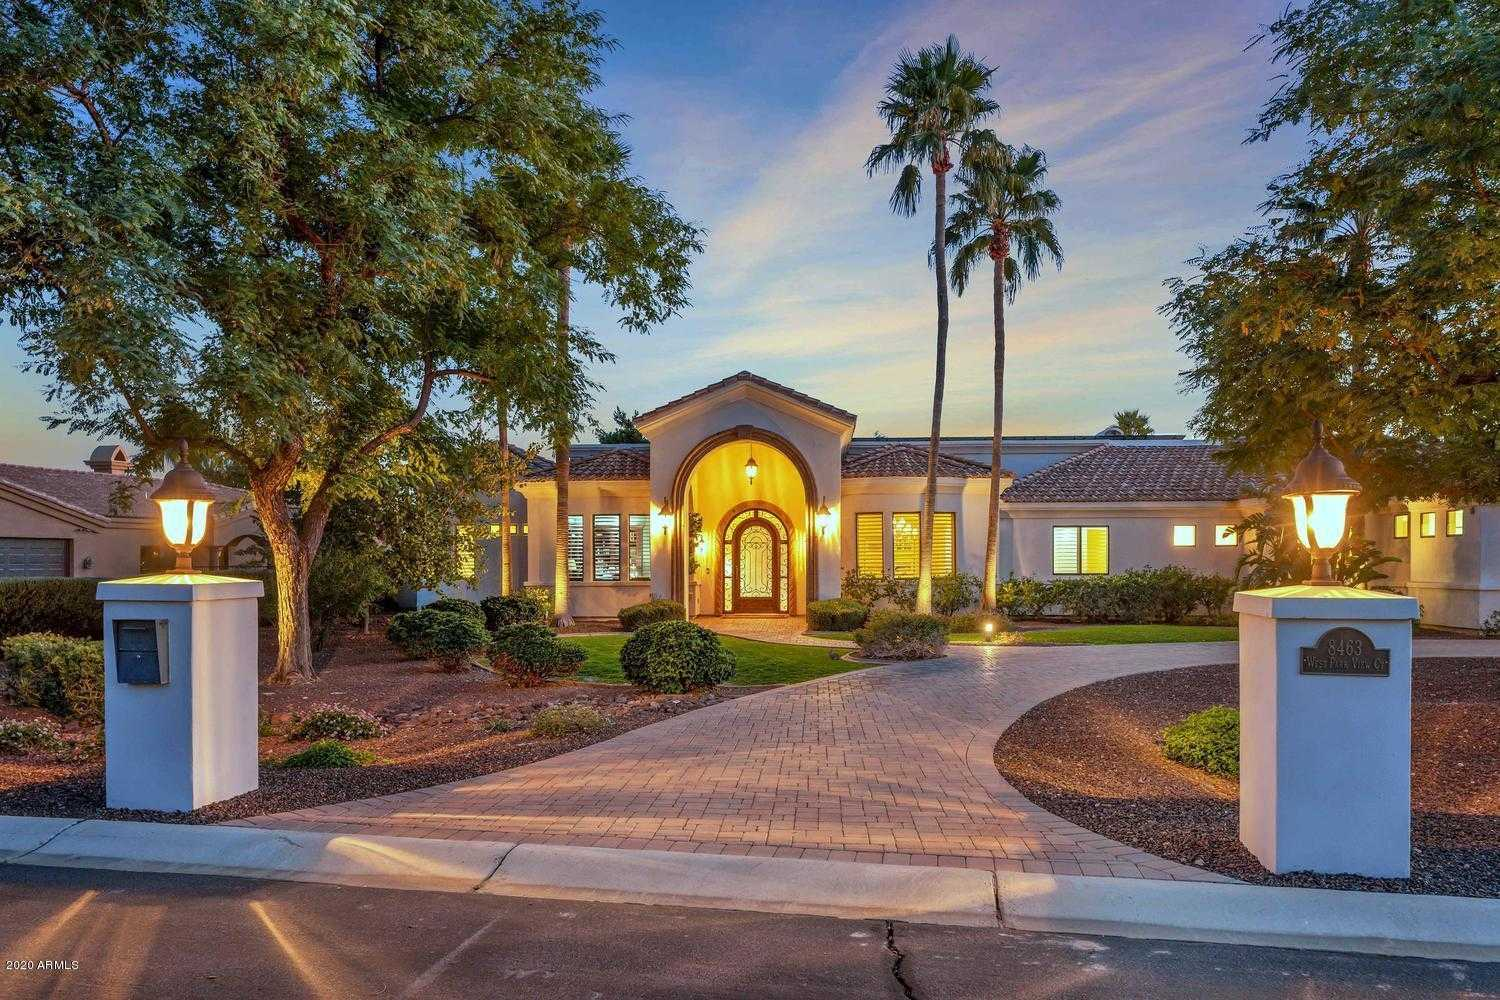 $1,399,000 - 5Br/5Ba - Home for Sale in Summit At Sunrise Mountain, Peoria